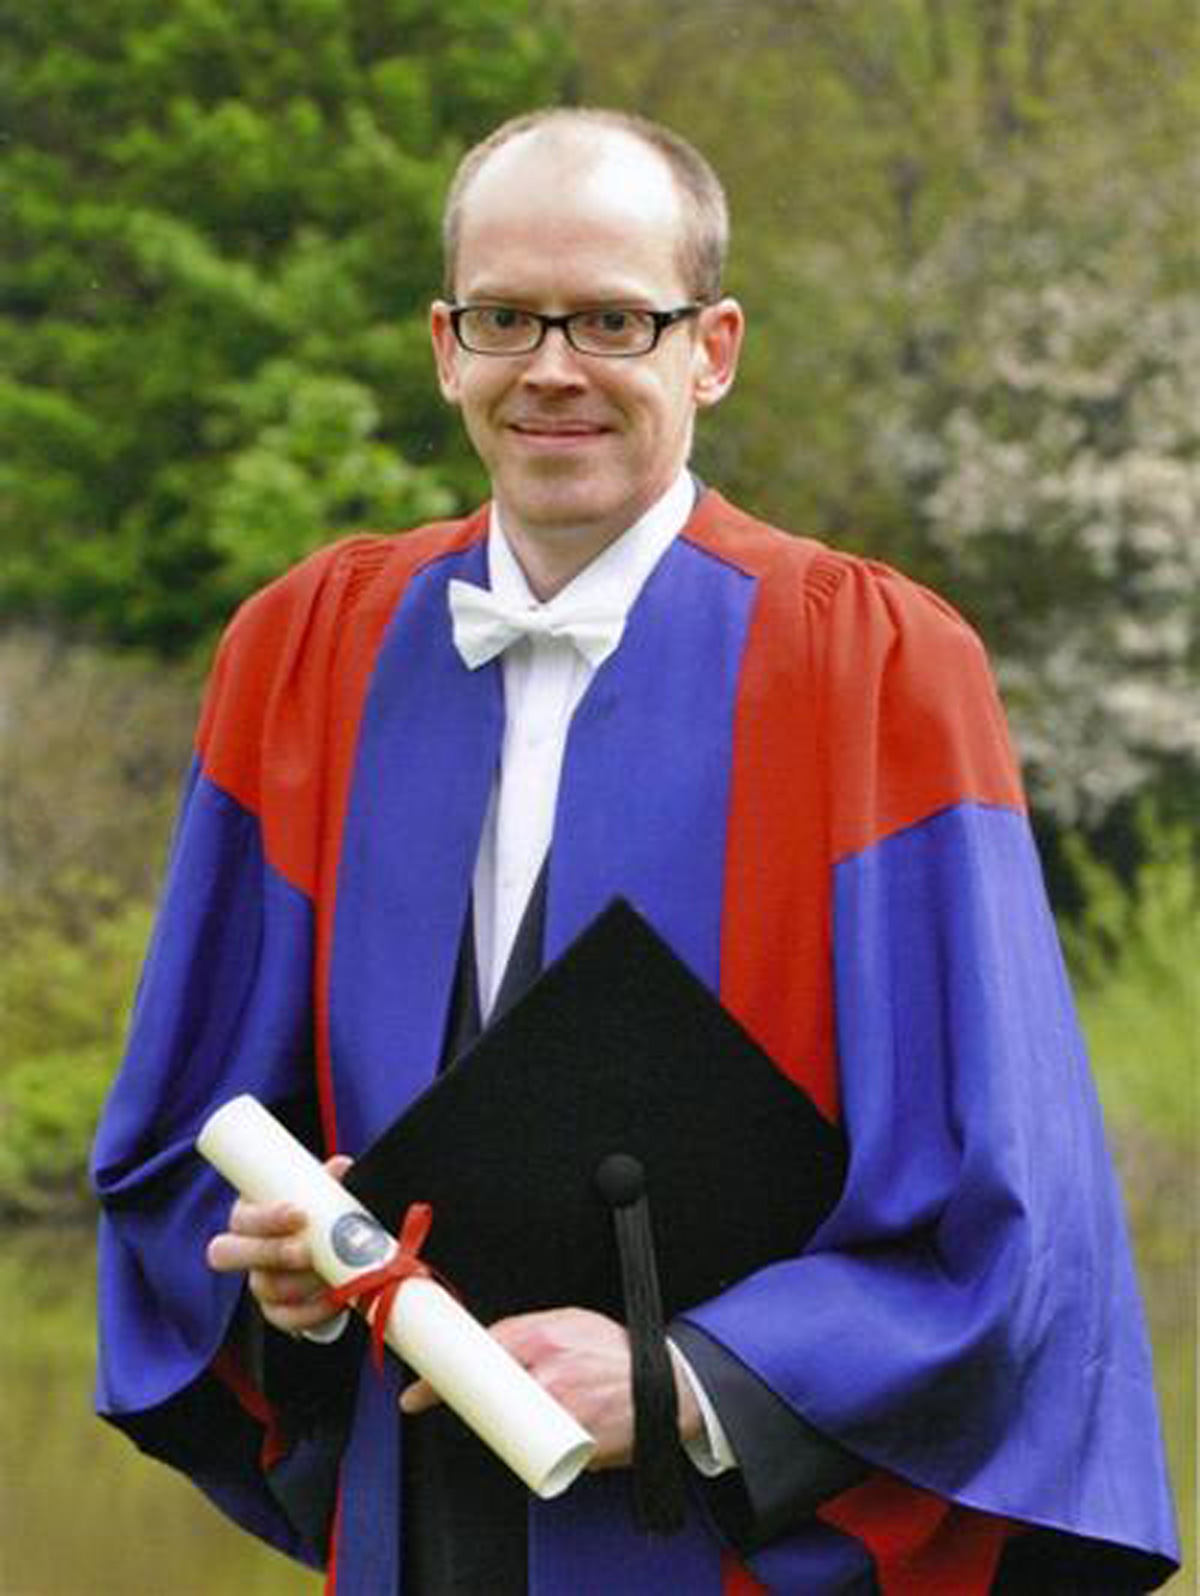 Dr Jonathan Stevens, who has died aged 34